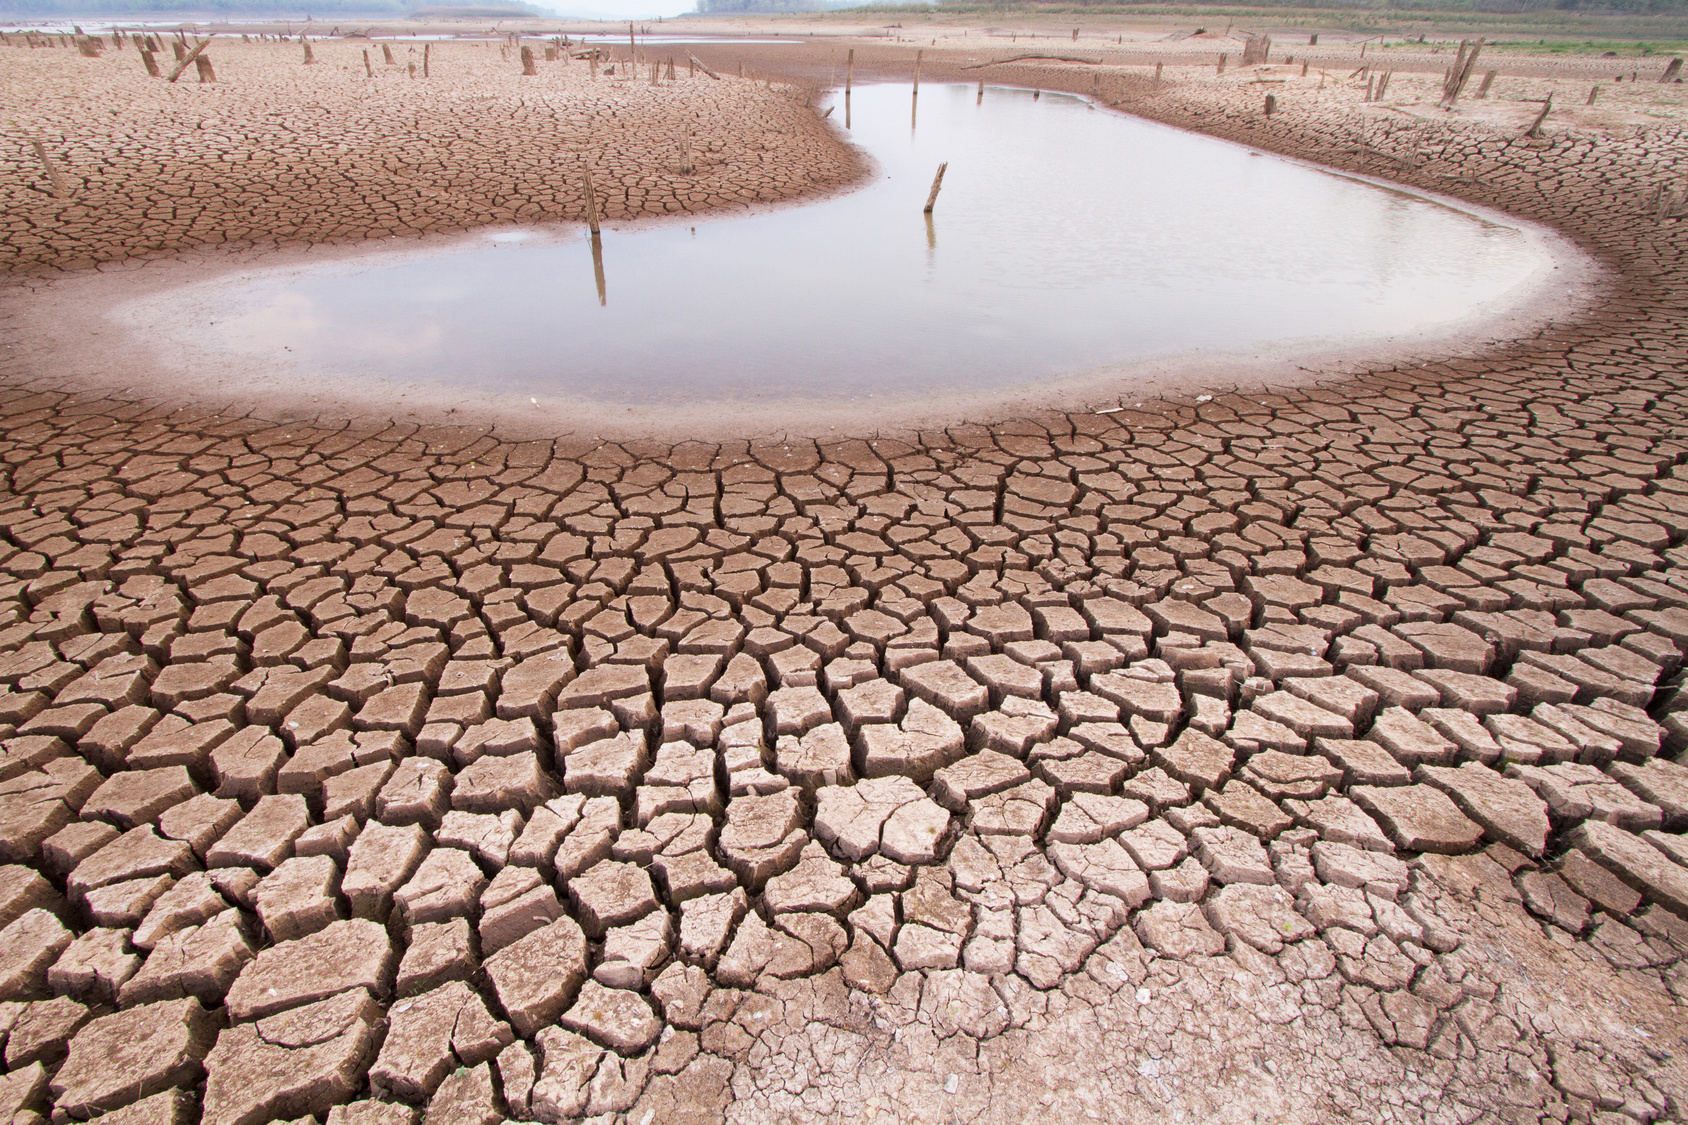 airidification, water shortage, drier climate